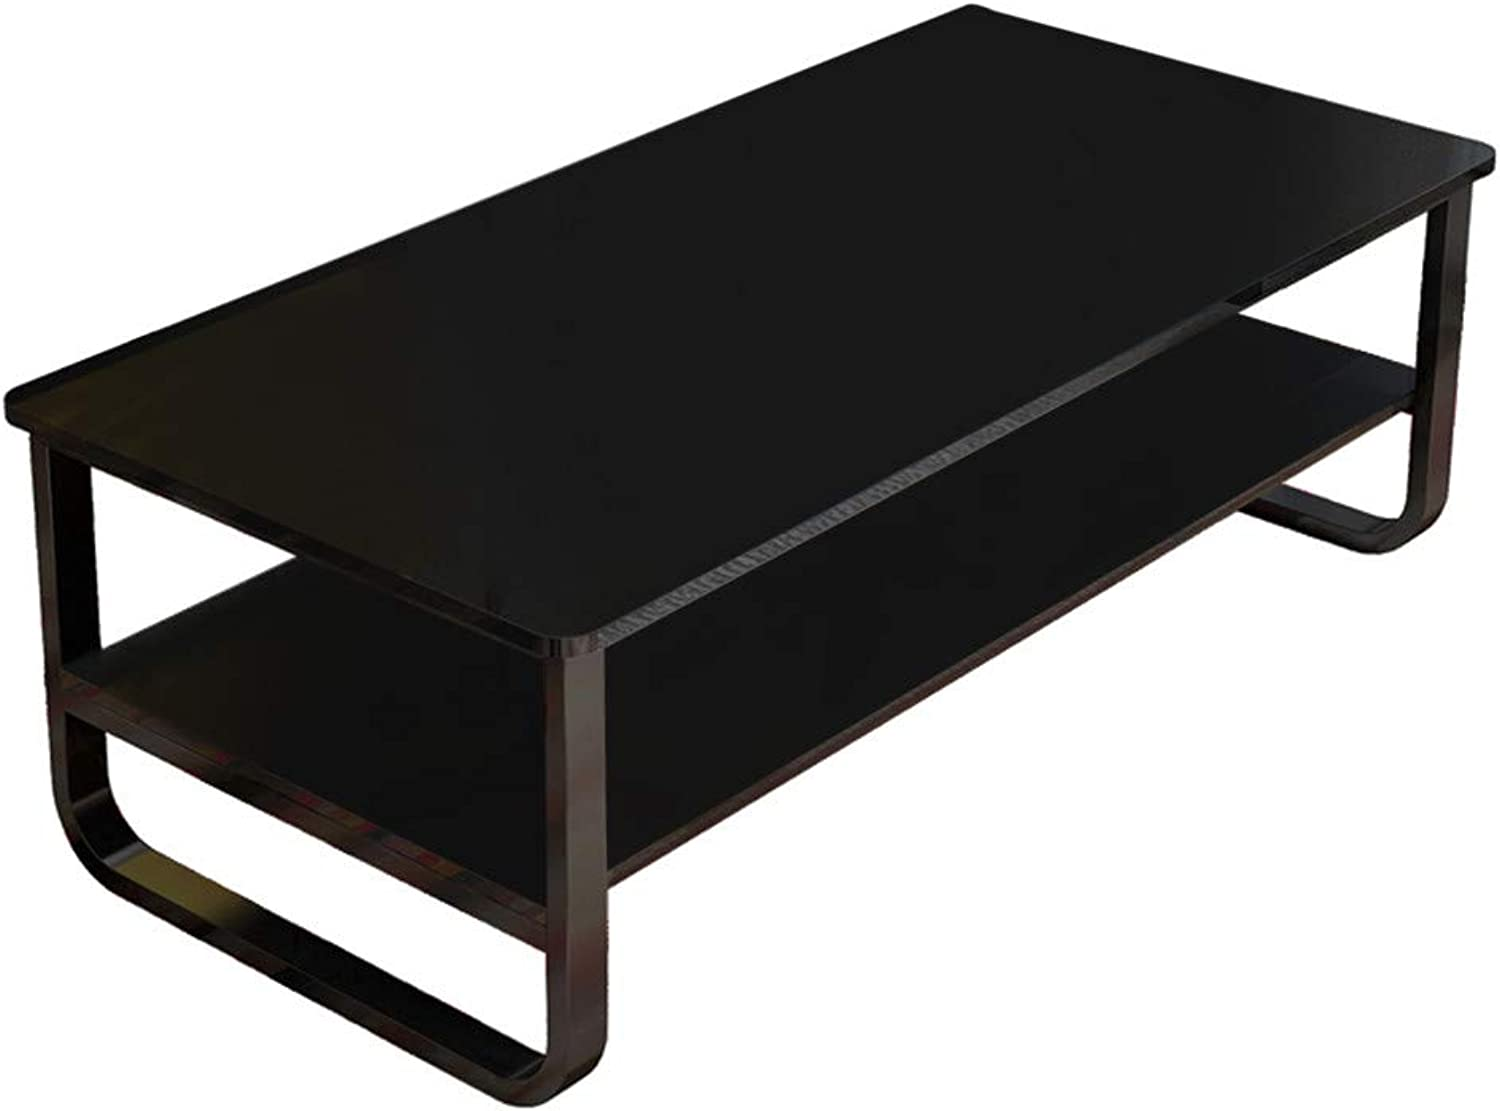 Simple Modern Living Room Double Rectangular Coffee Table 47×22.8Inch Black White - Ship from US